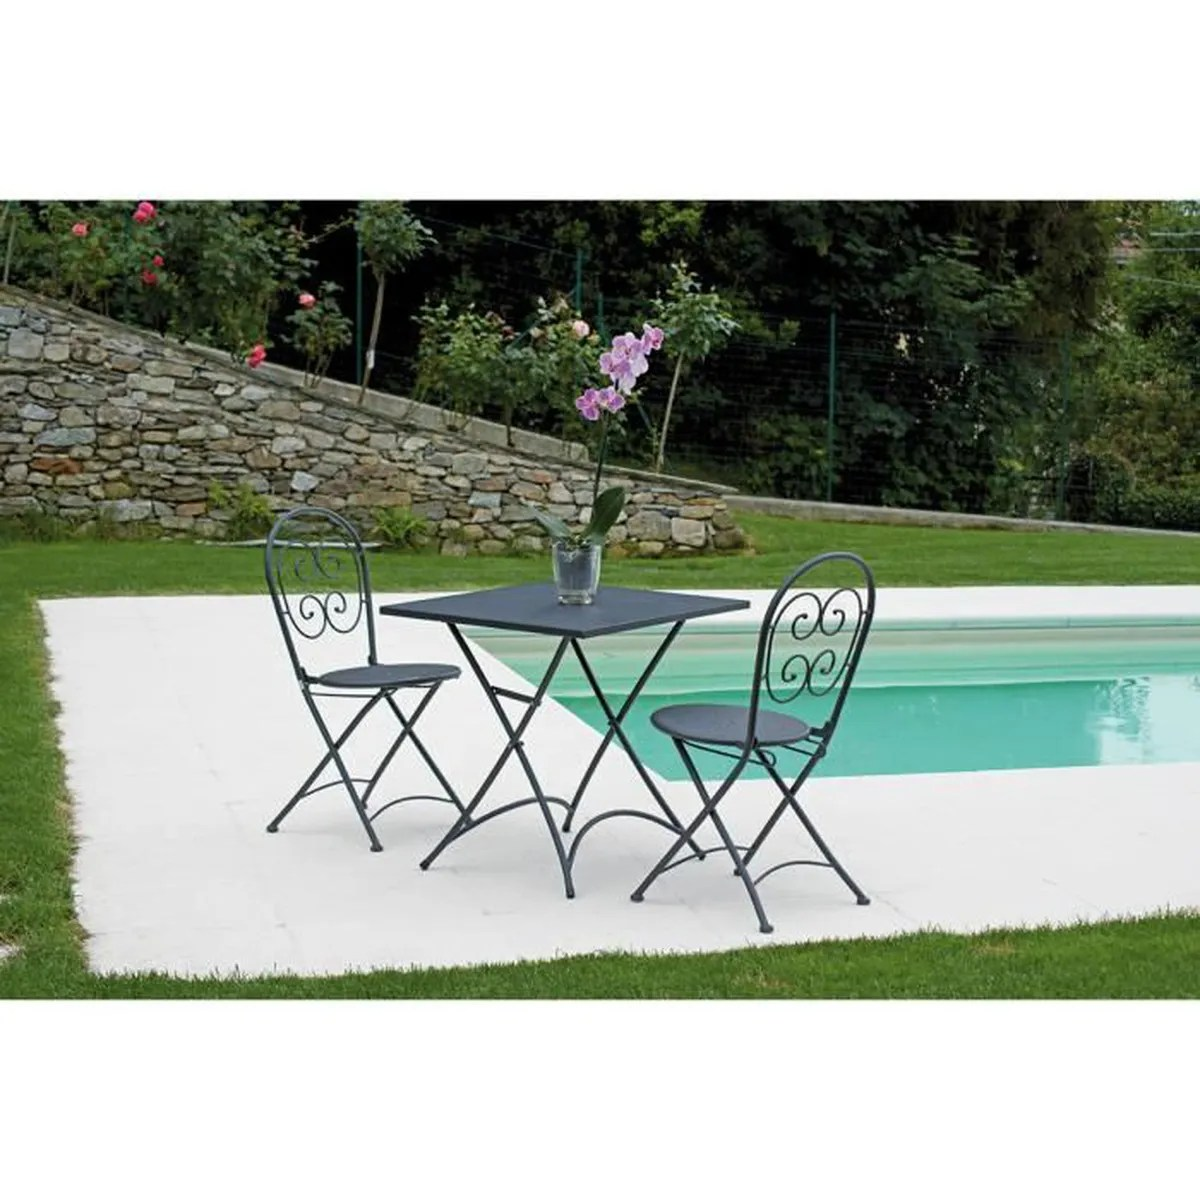 Petite Table De Jardin En Fer Forge Chaise De Jardin Pliante Beautiful Chaise De Jardin Metal